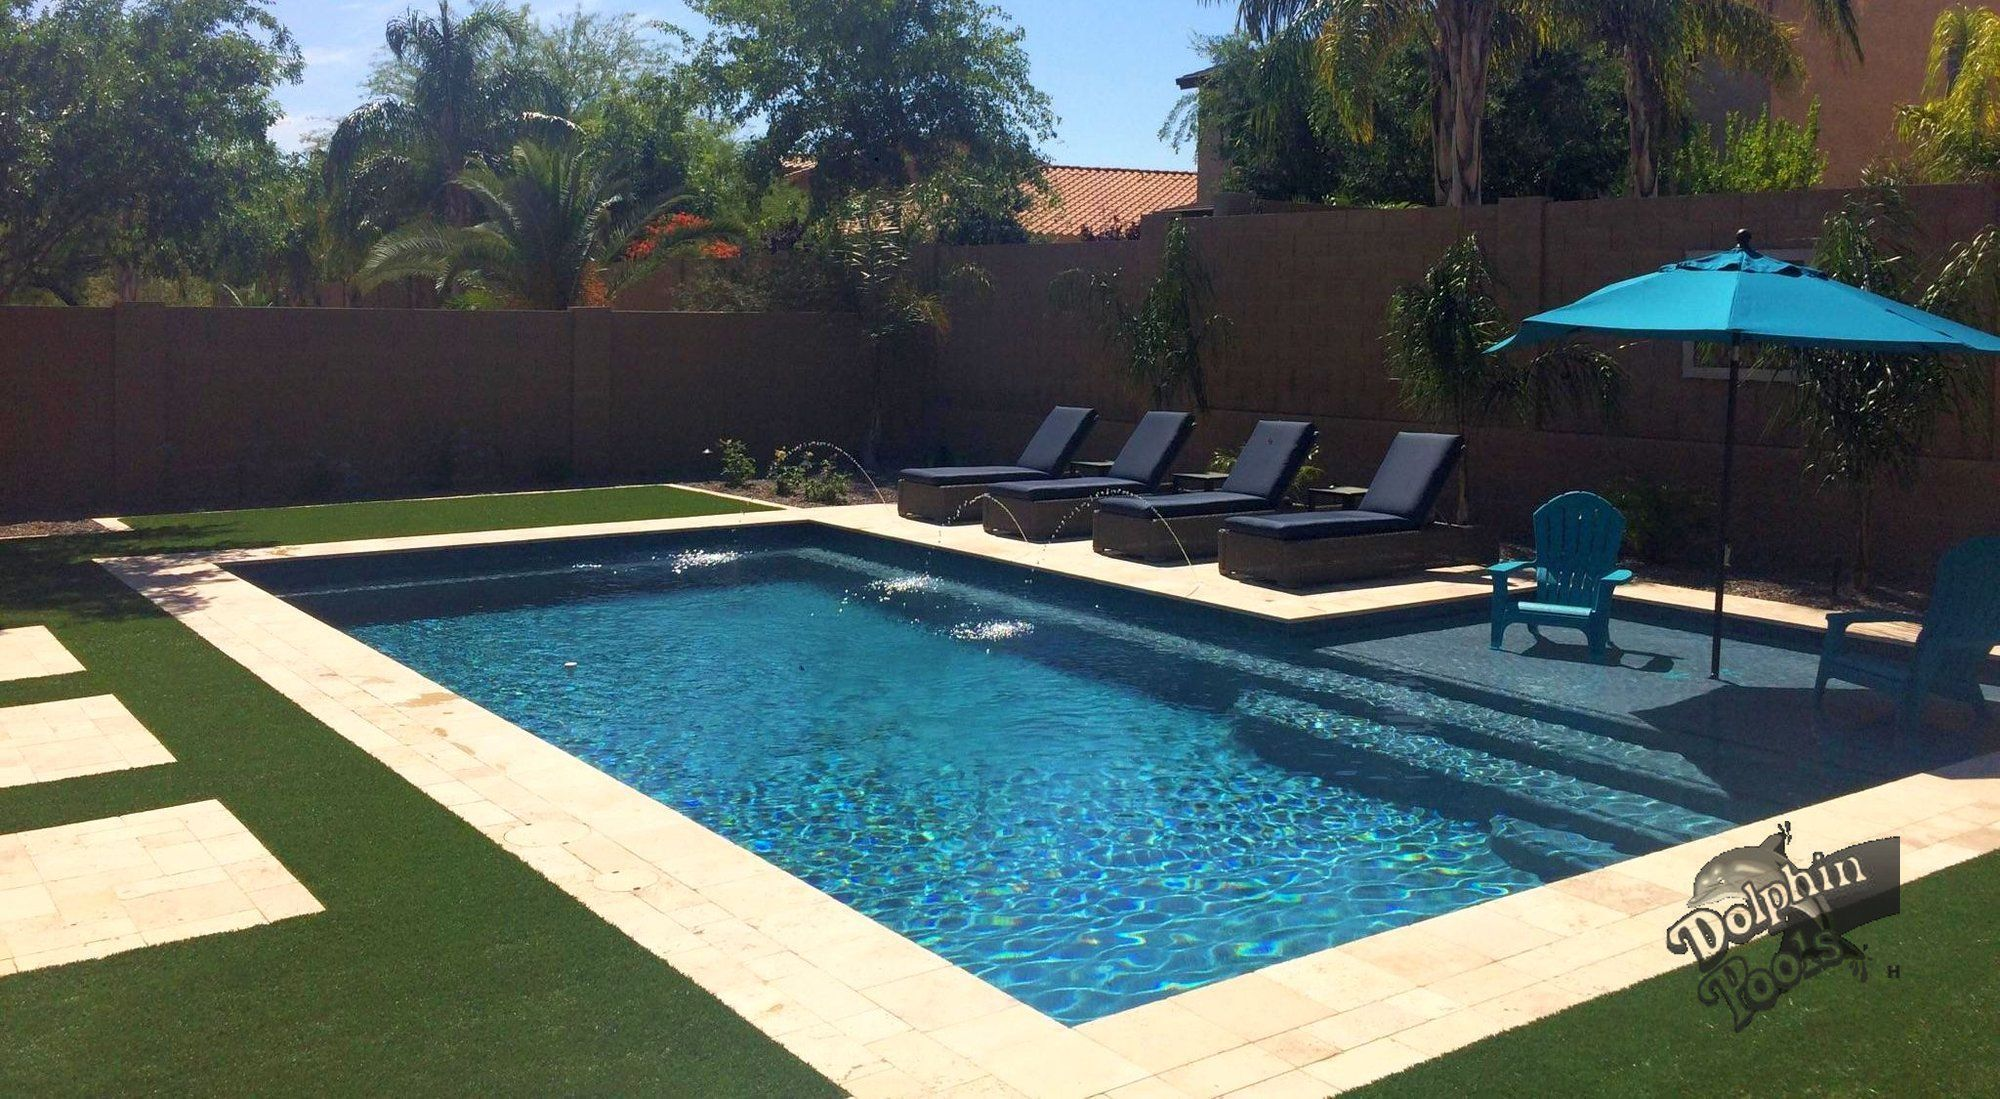 Pool by dolphin pools and spas modernpoolandspa